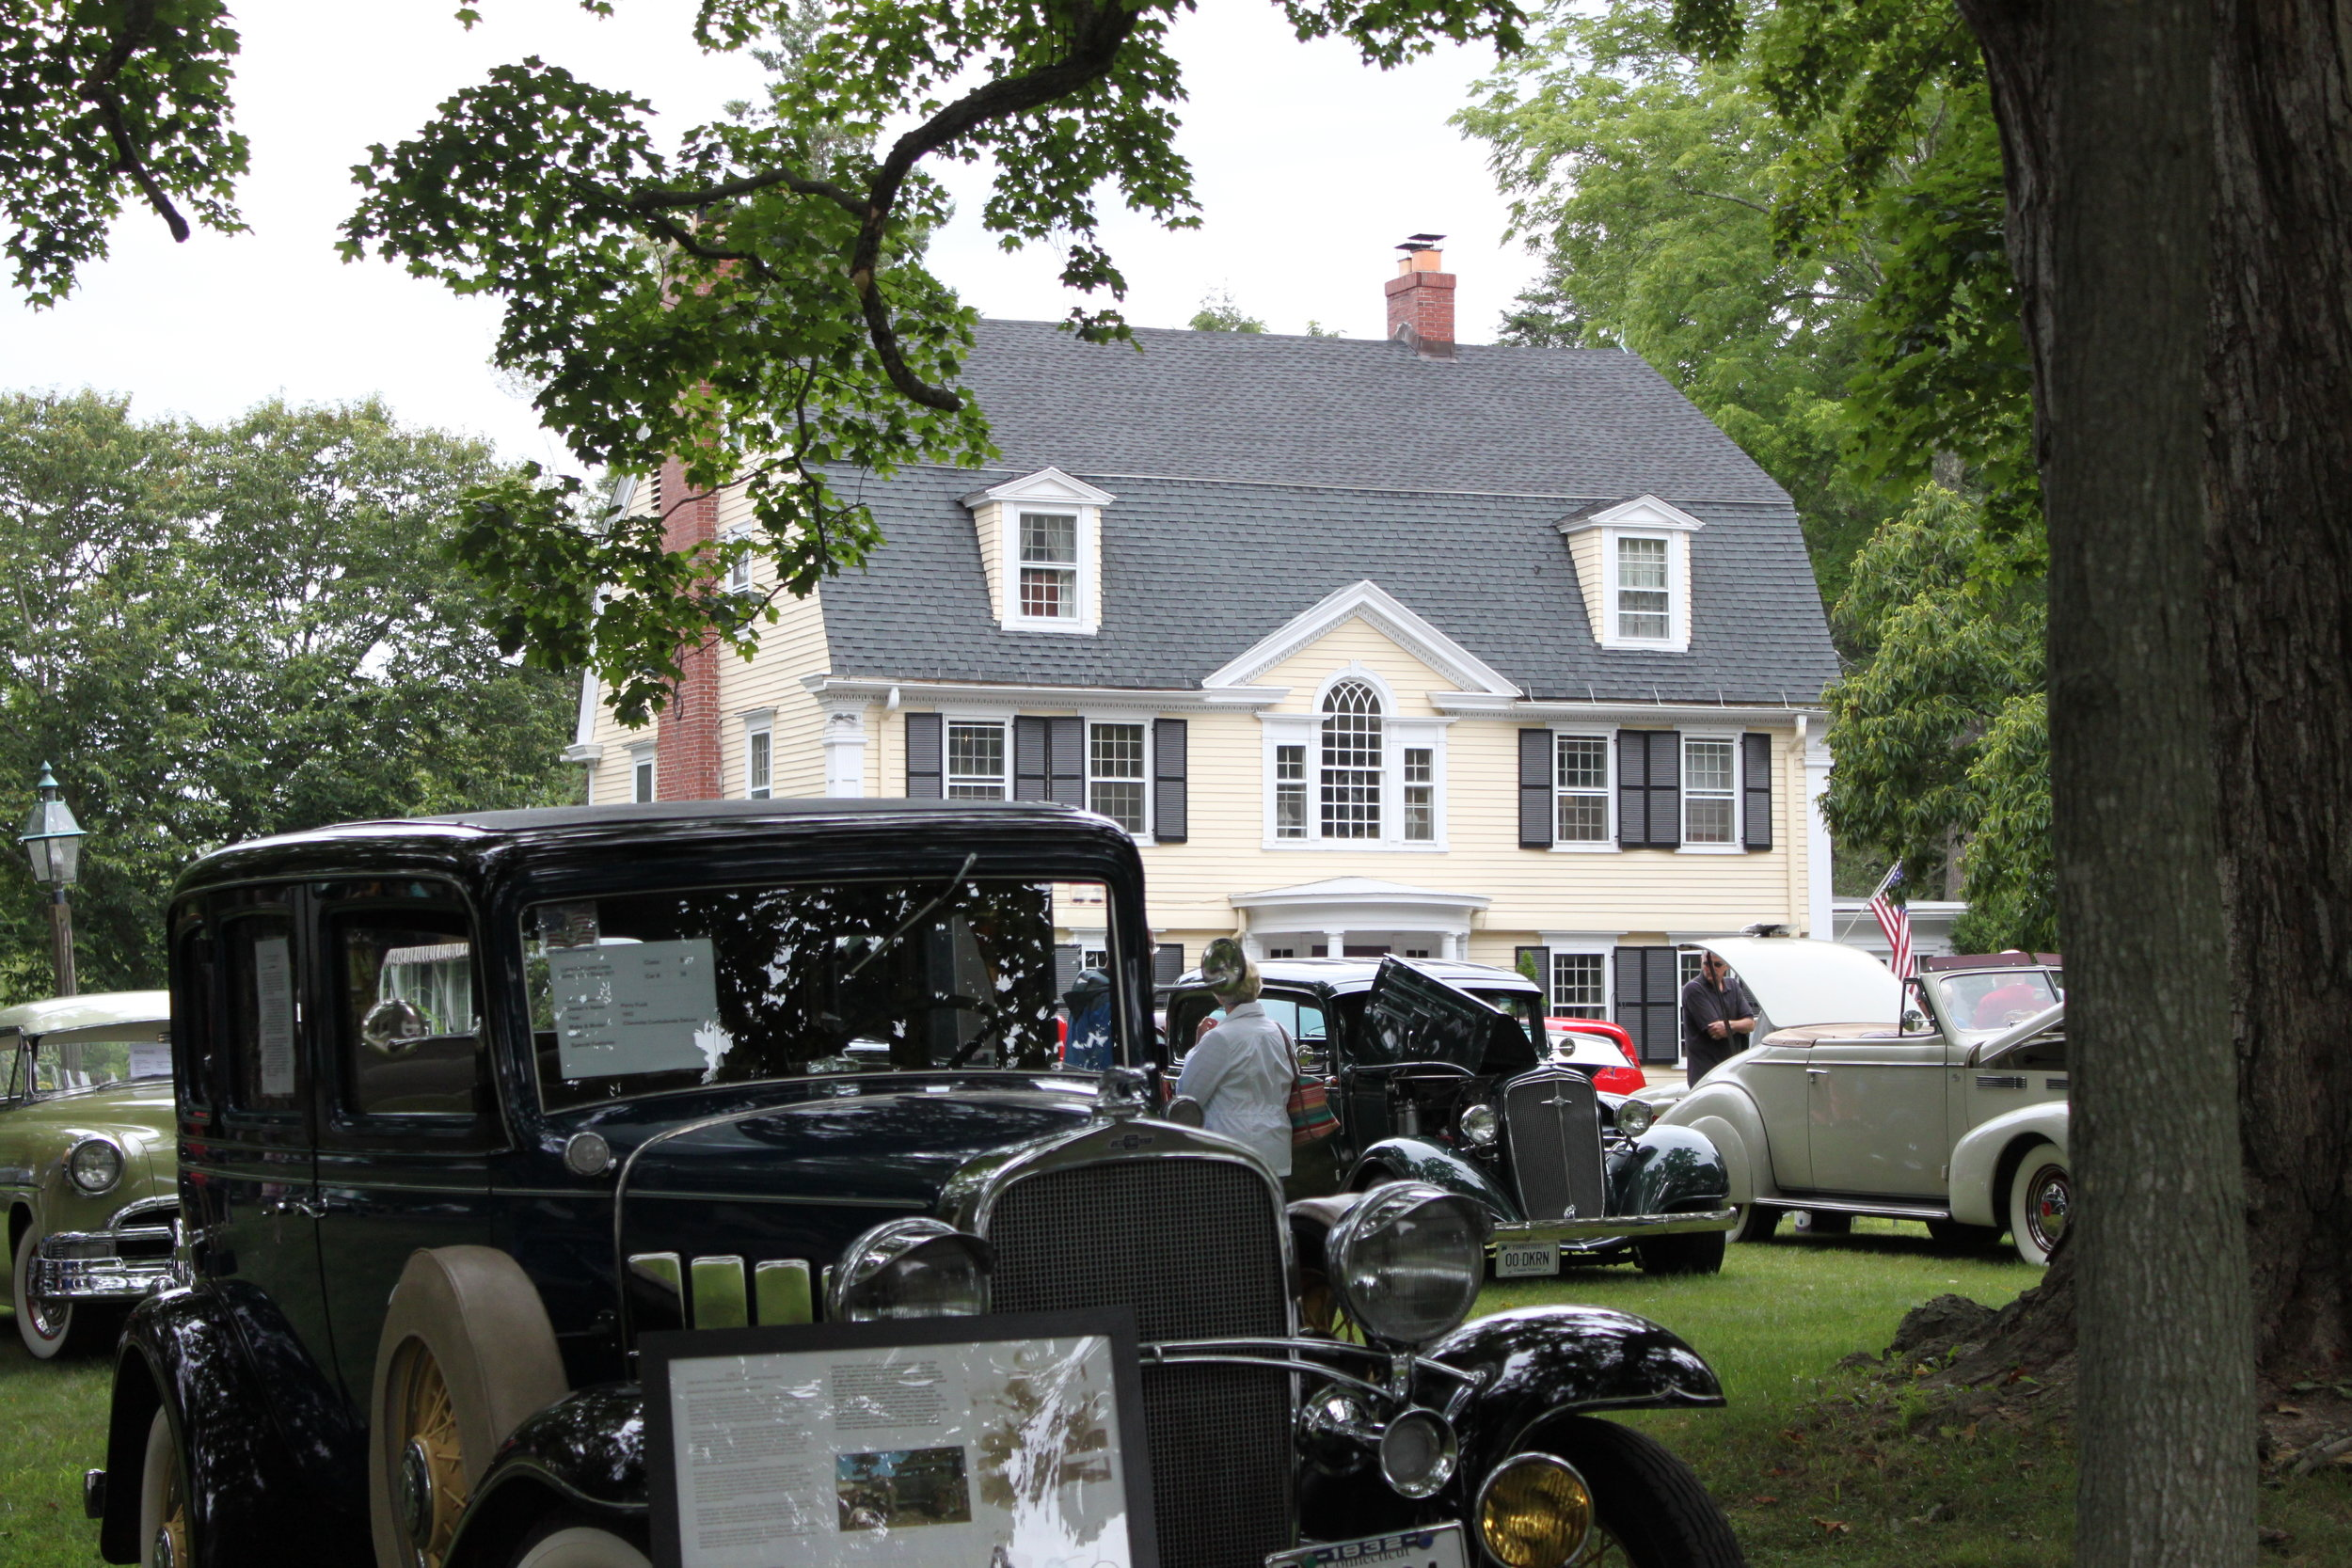 Antique Car Show - Walk down Memory Lane with these antique autos and vote for your favorite in the Lyme-Old Lyme Lions Club Annual Classic Car Show. The Bee & Thistle Inn hosts this crowd pleaser from 9am to 2pm. Show registration for your classic beauty will soon open on the Lions' website.